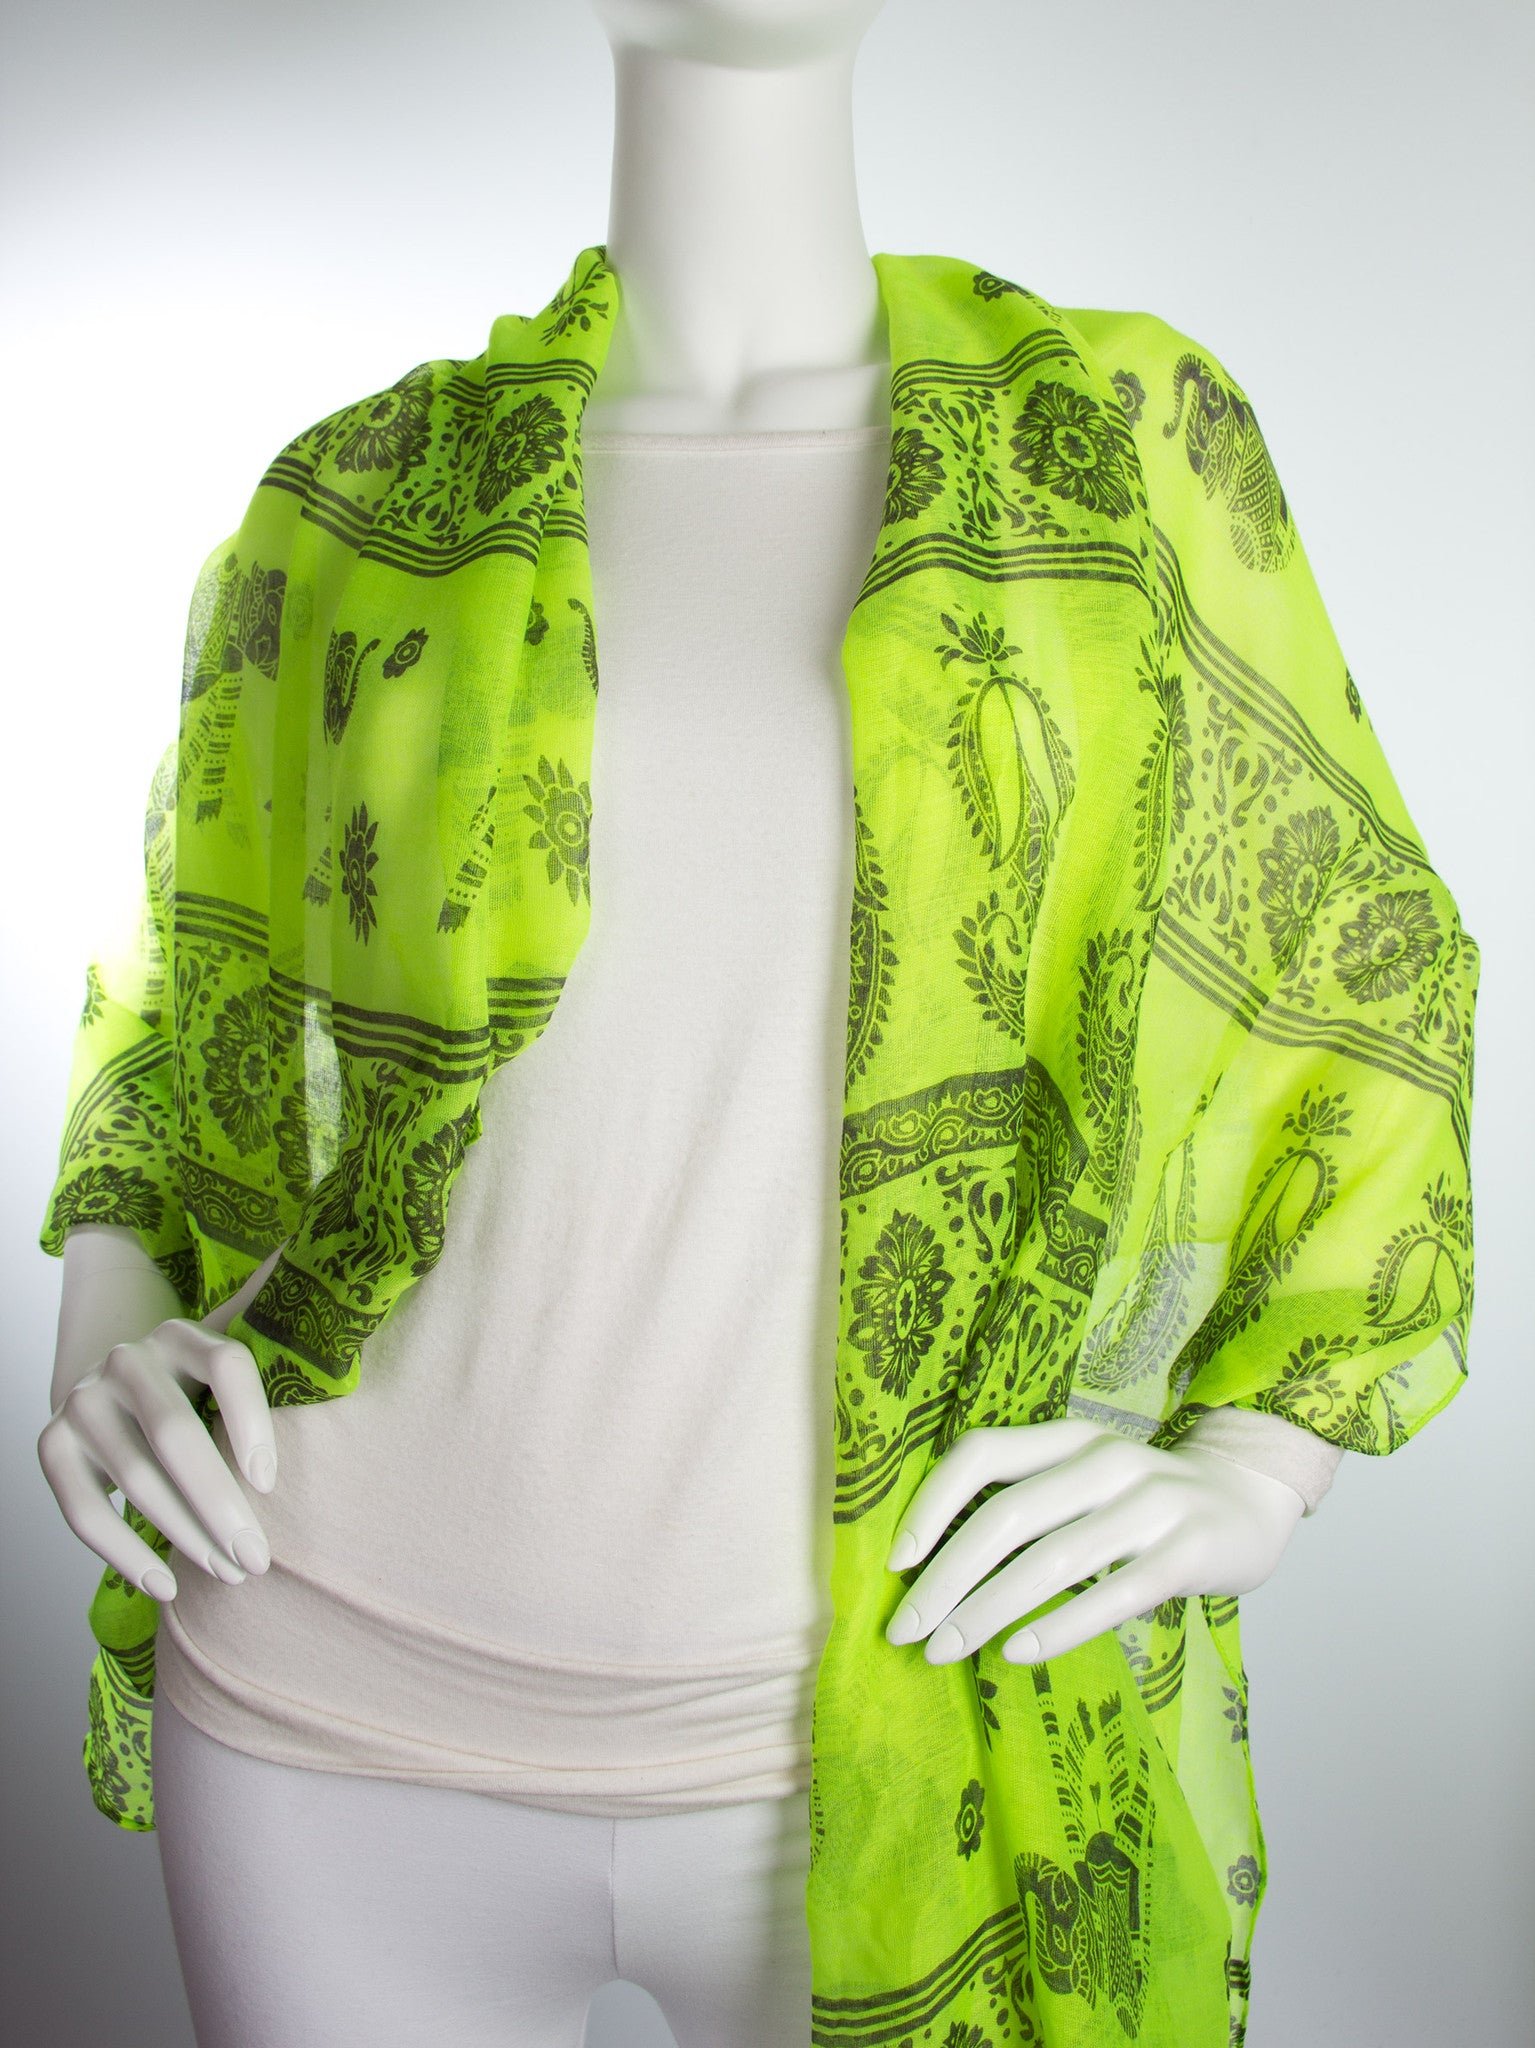 Scarves - Gaja Shawl, Paisley Indian Elephant Print Scarf, Shawl, Beach Wrap -() Bohomonde  - 15